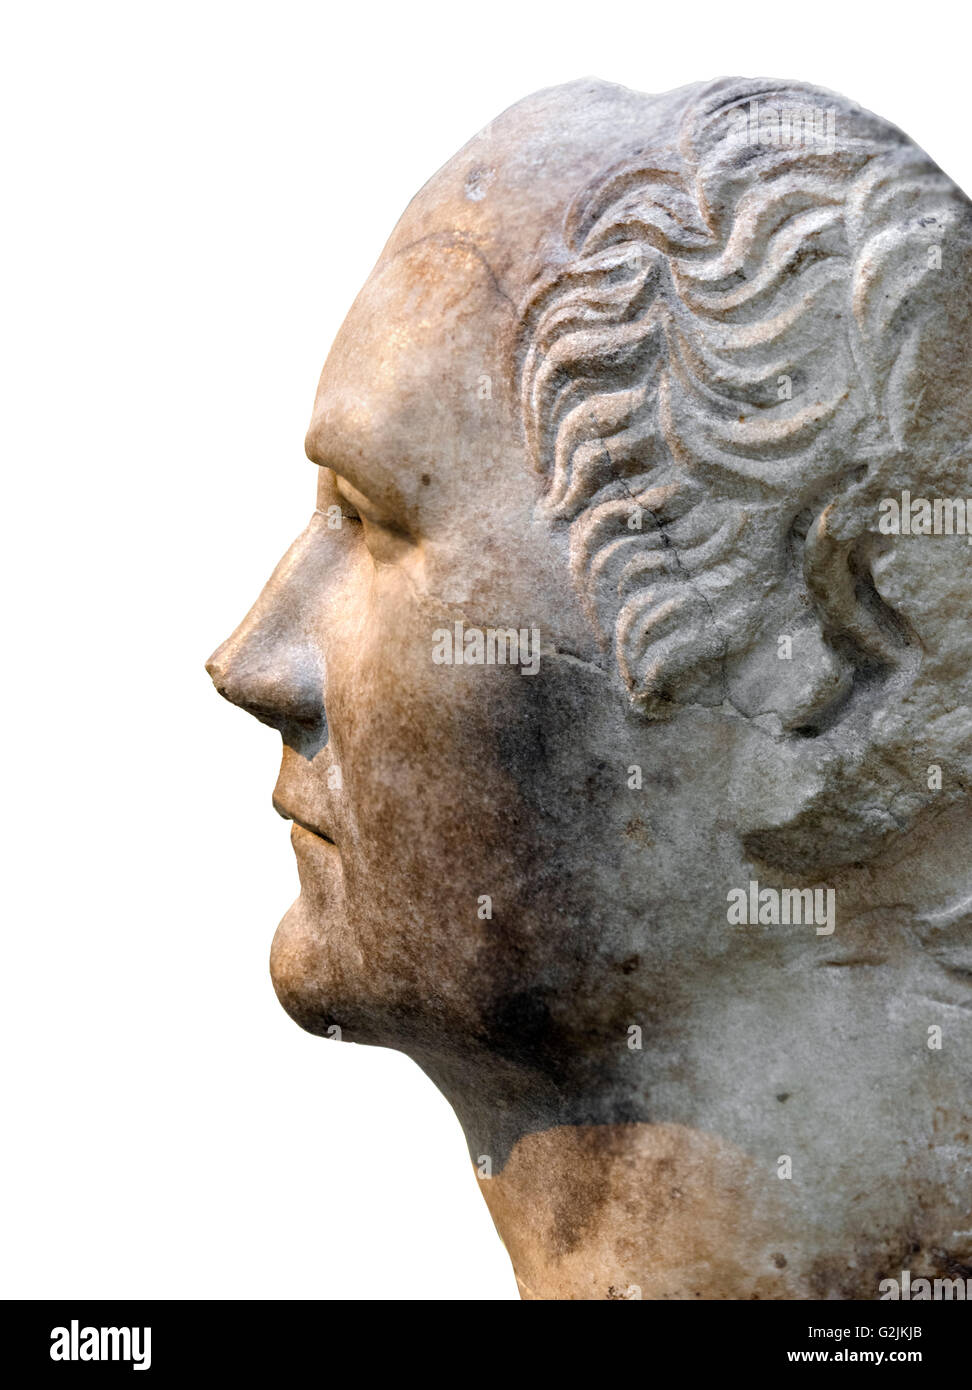 Julius Caesar. Marble head from a statue, found in the Sanctuary of Athena Polias, probably of Julius Caesar. - Stock Image